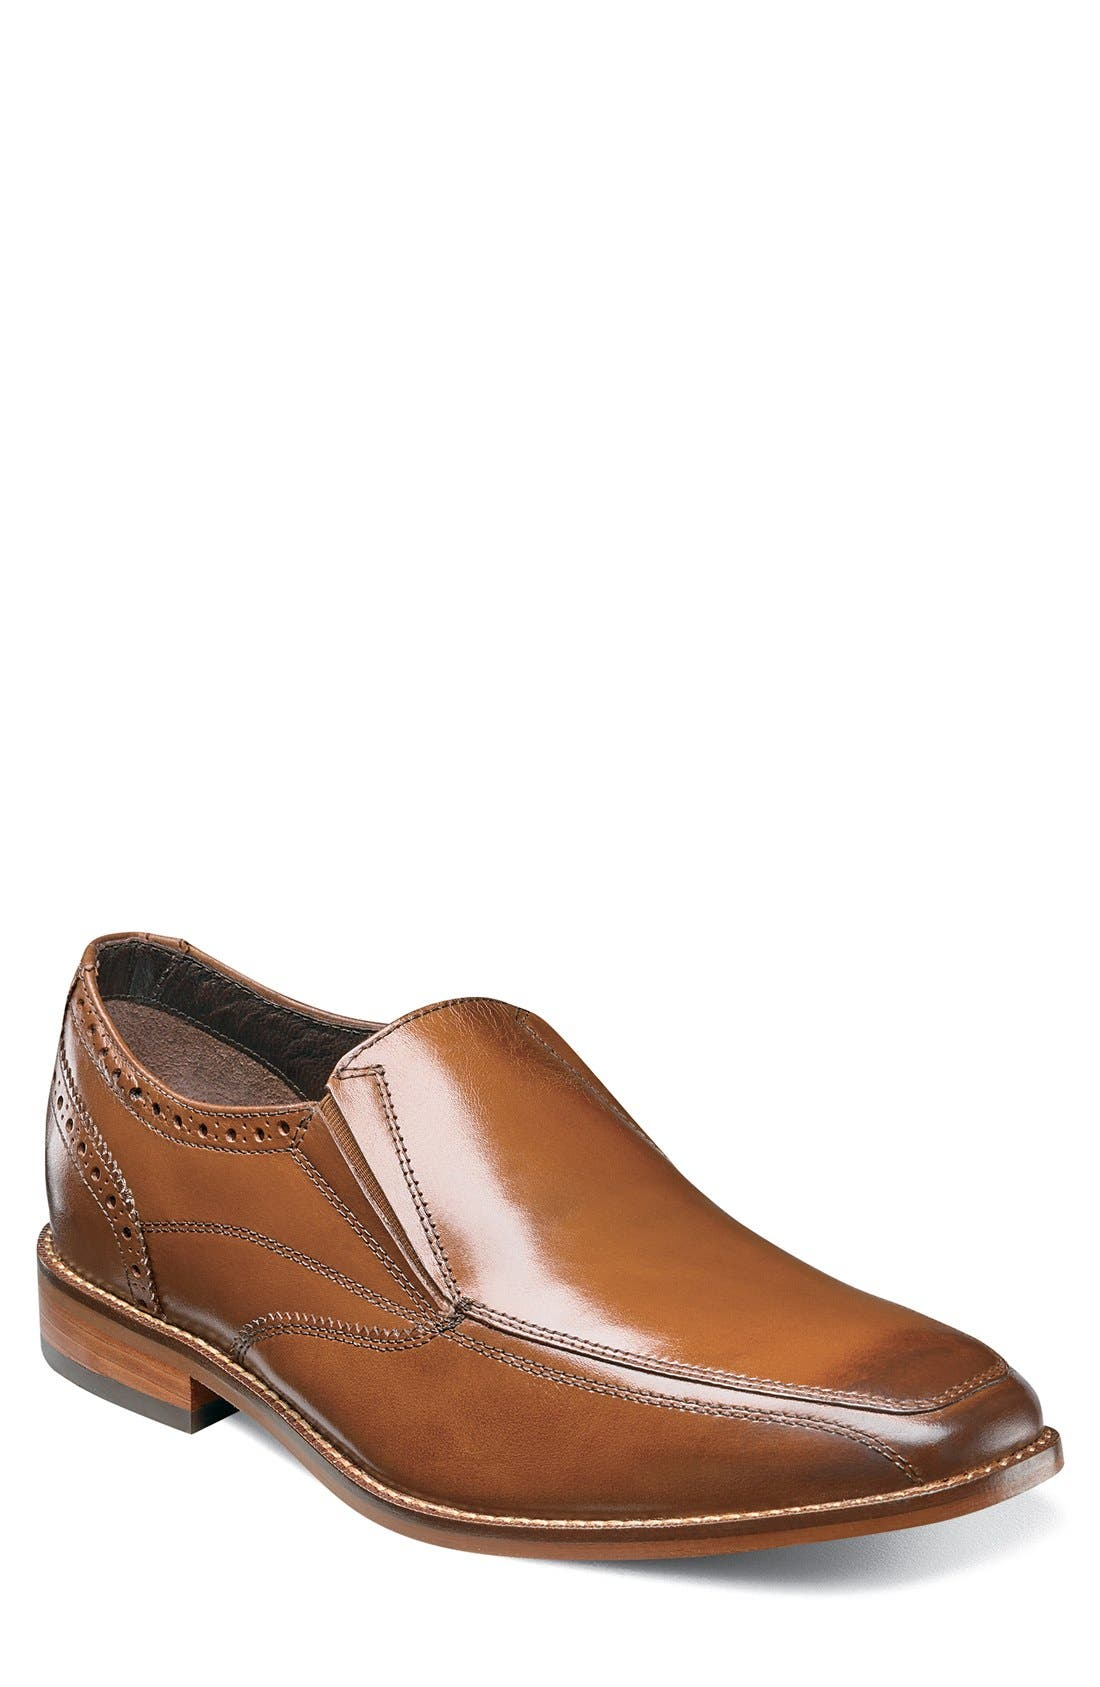 Alternate Image 1 Selected - Florsheim 'Castellano' Venetian Loafer (Men)